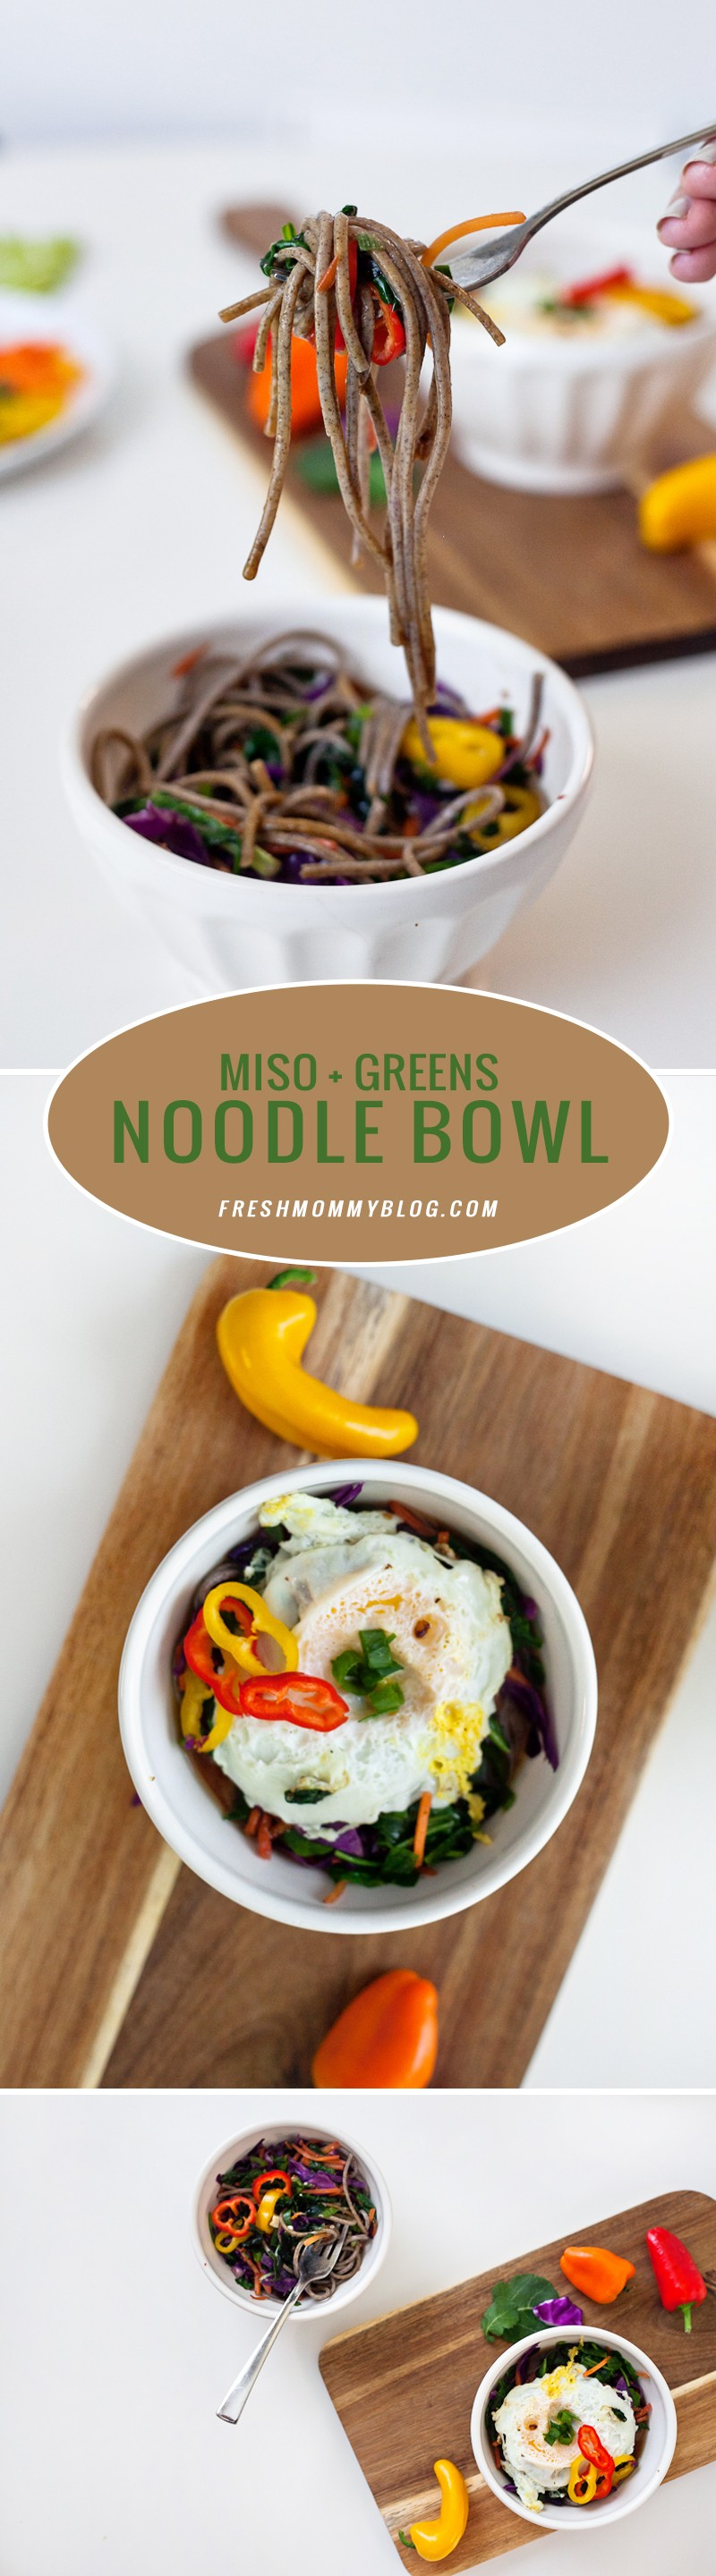 Miso and Greens Noodle Bowl